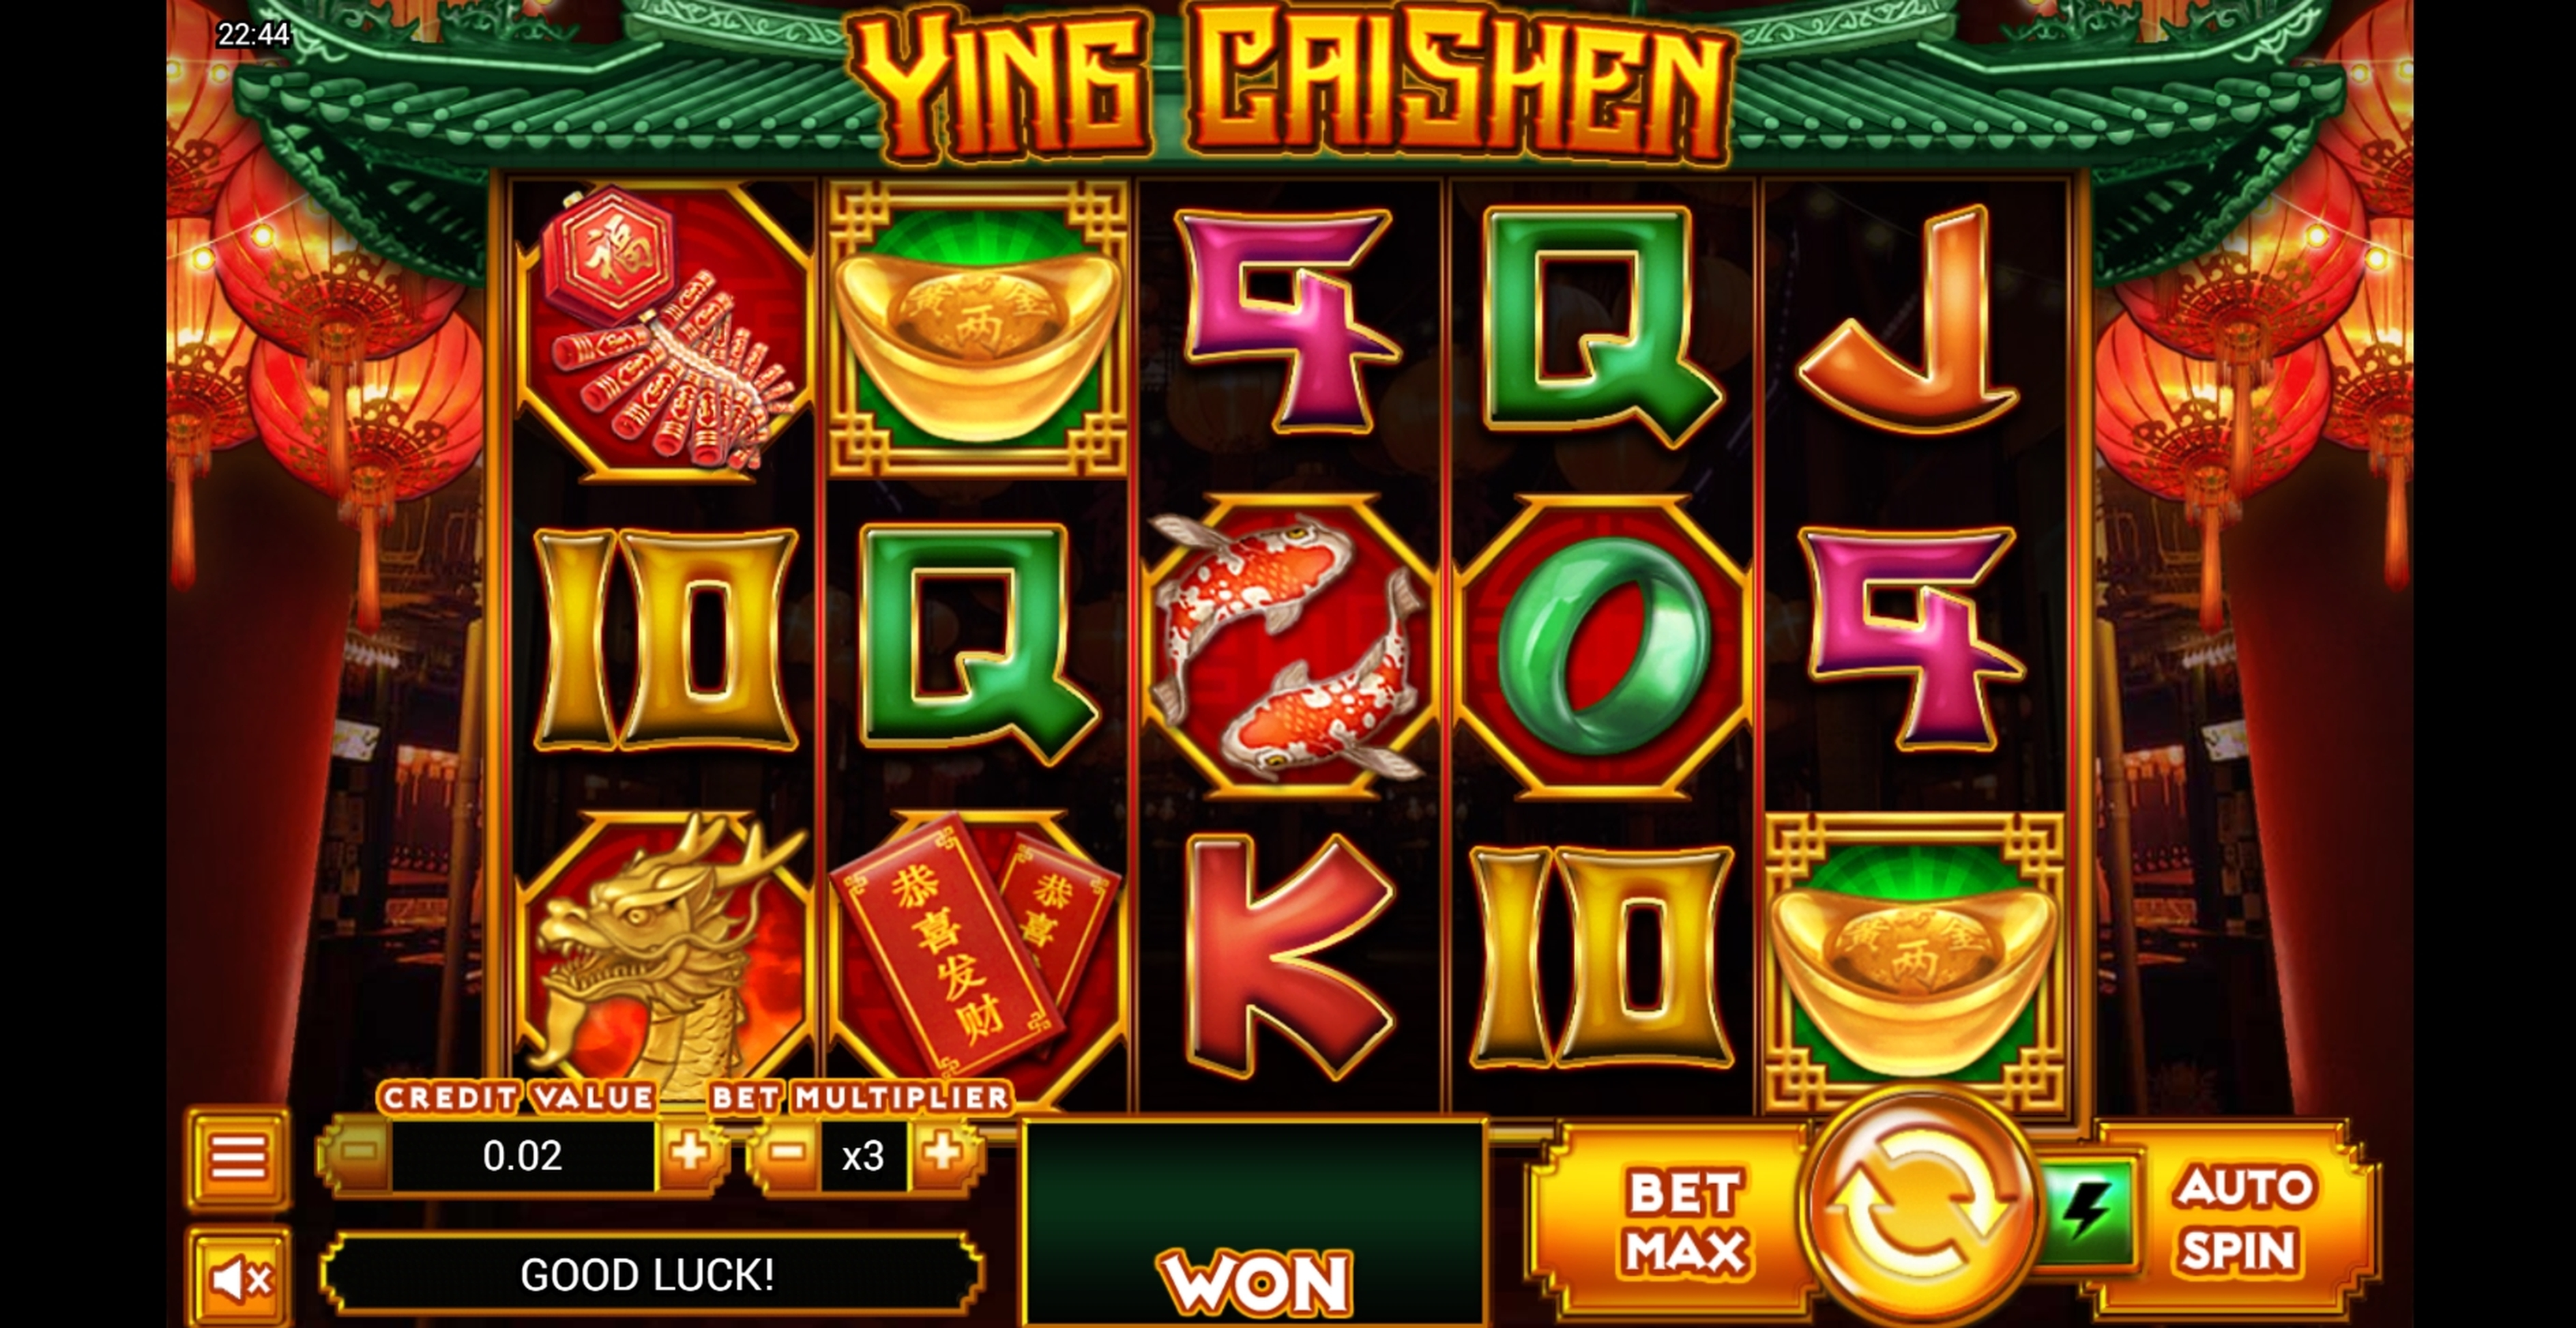 Win Money in Ying Cai Shen (Skywind Group) Free Slot Game by Skywind